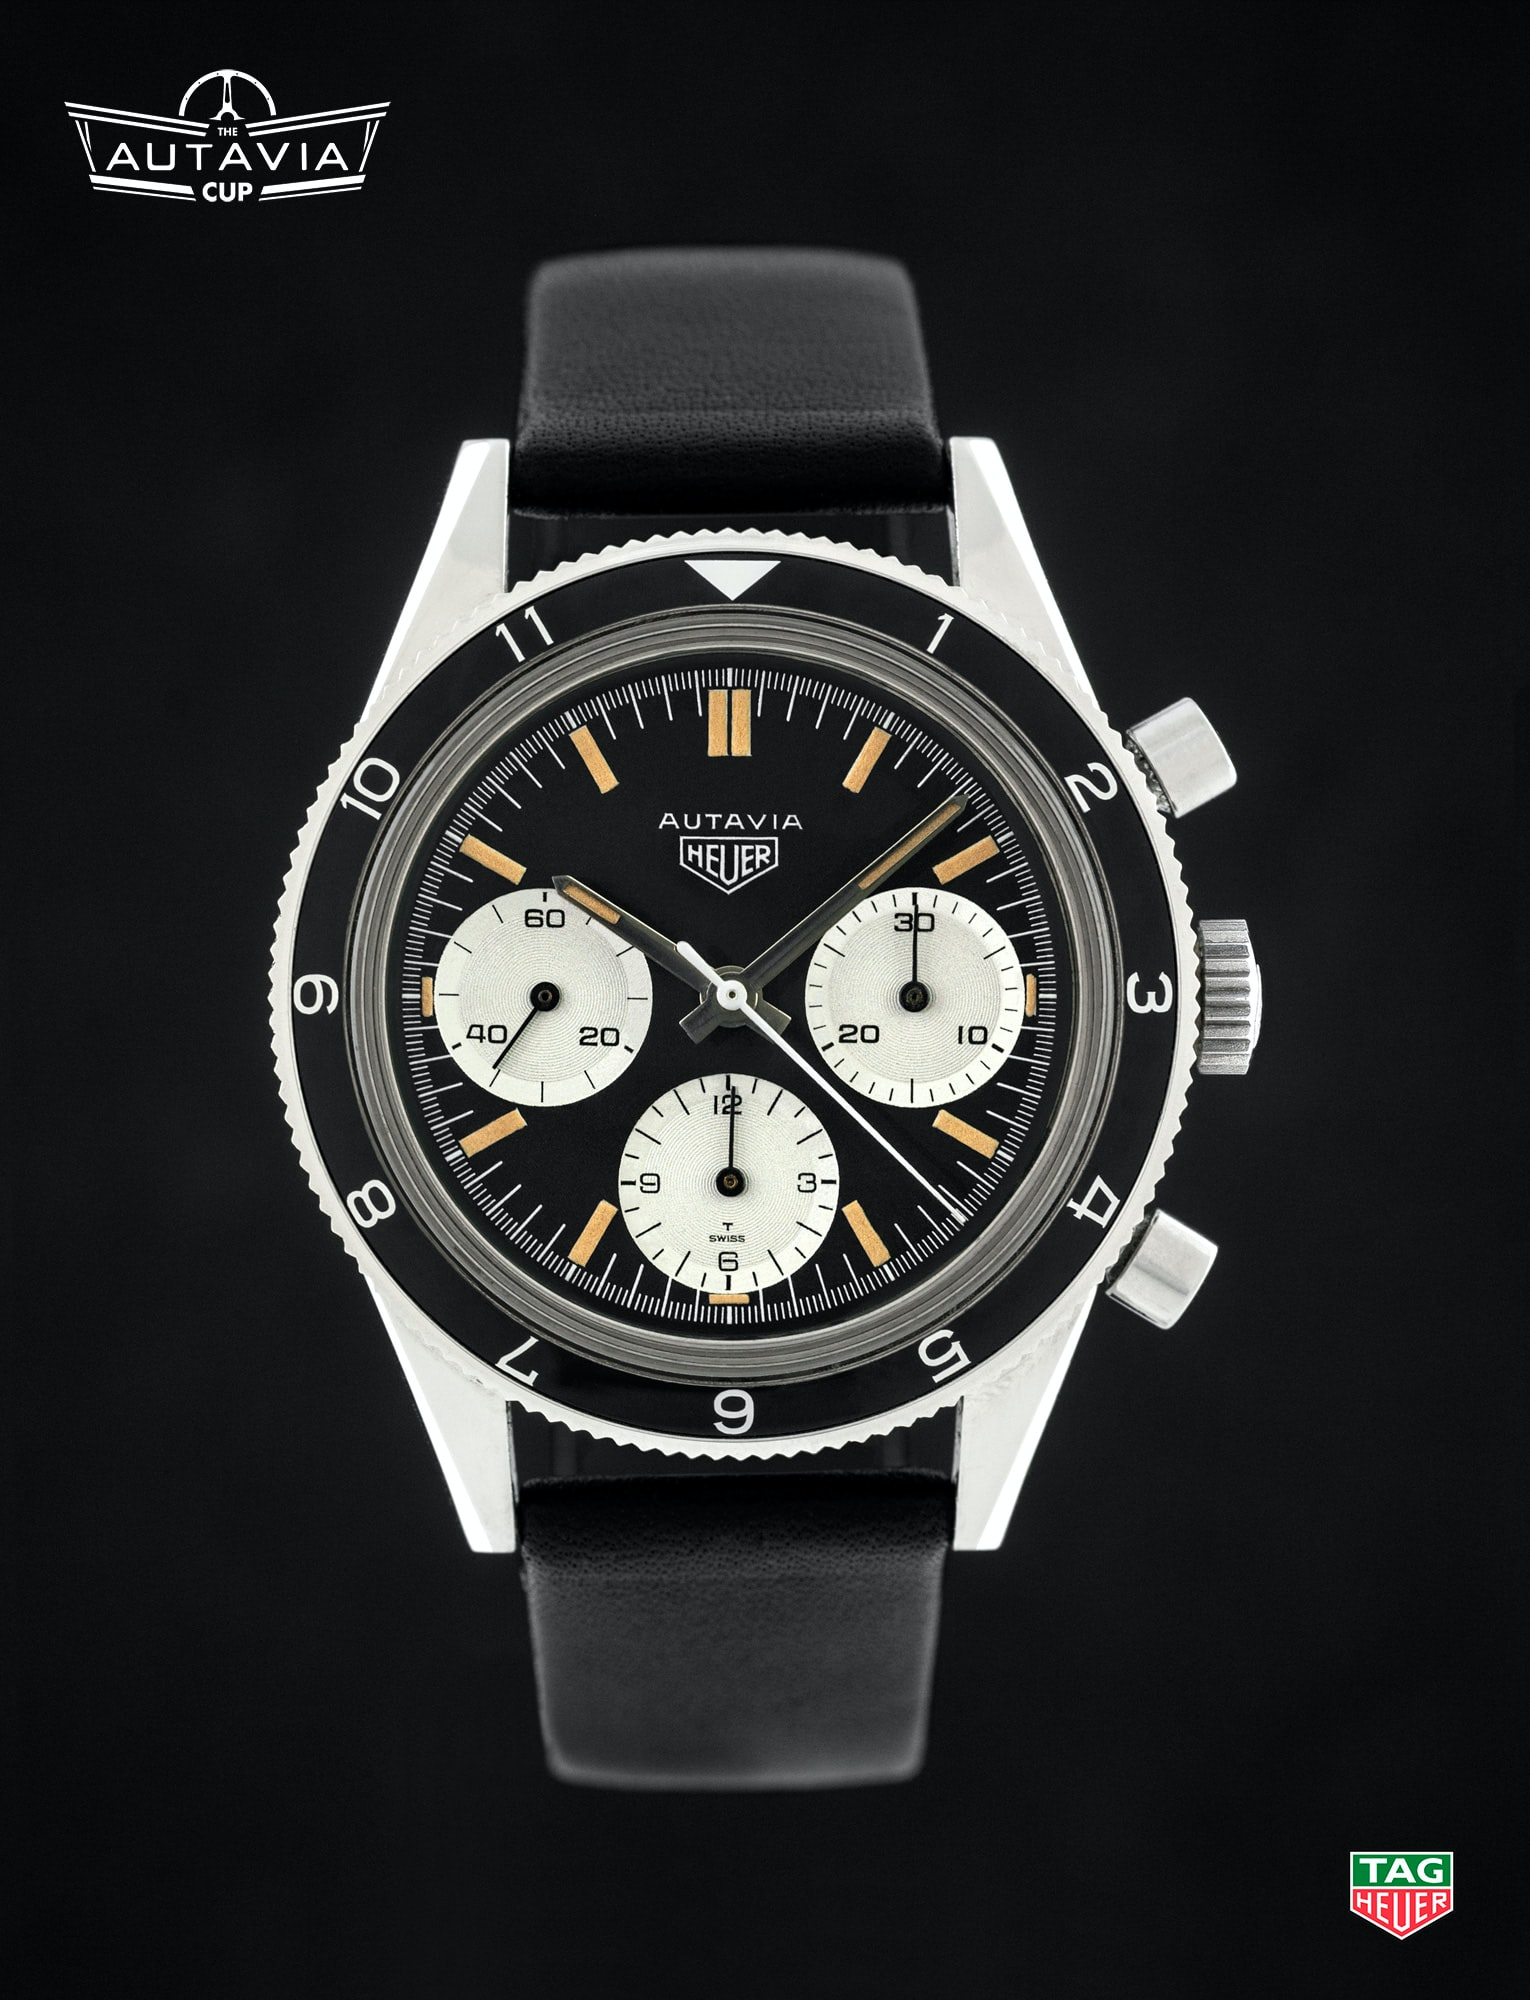 Heuer Autavia Ref. 2446 Mk4 TAG Heuer Will Relaunch The Autavia In 2017 – And Fans Get To Choose The Model TAG Heuer Will Relaunch The Autavia In 2017 – And Fans Get To Choose The Model 09 2446 Mk4